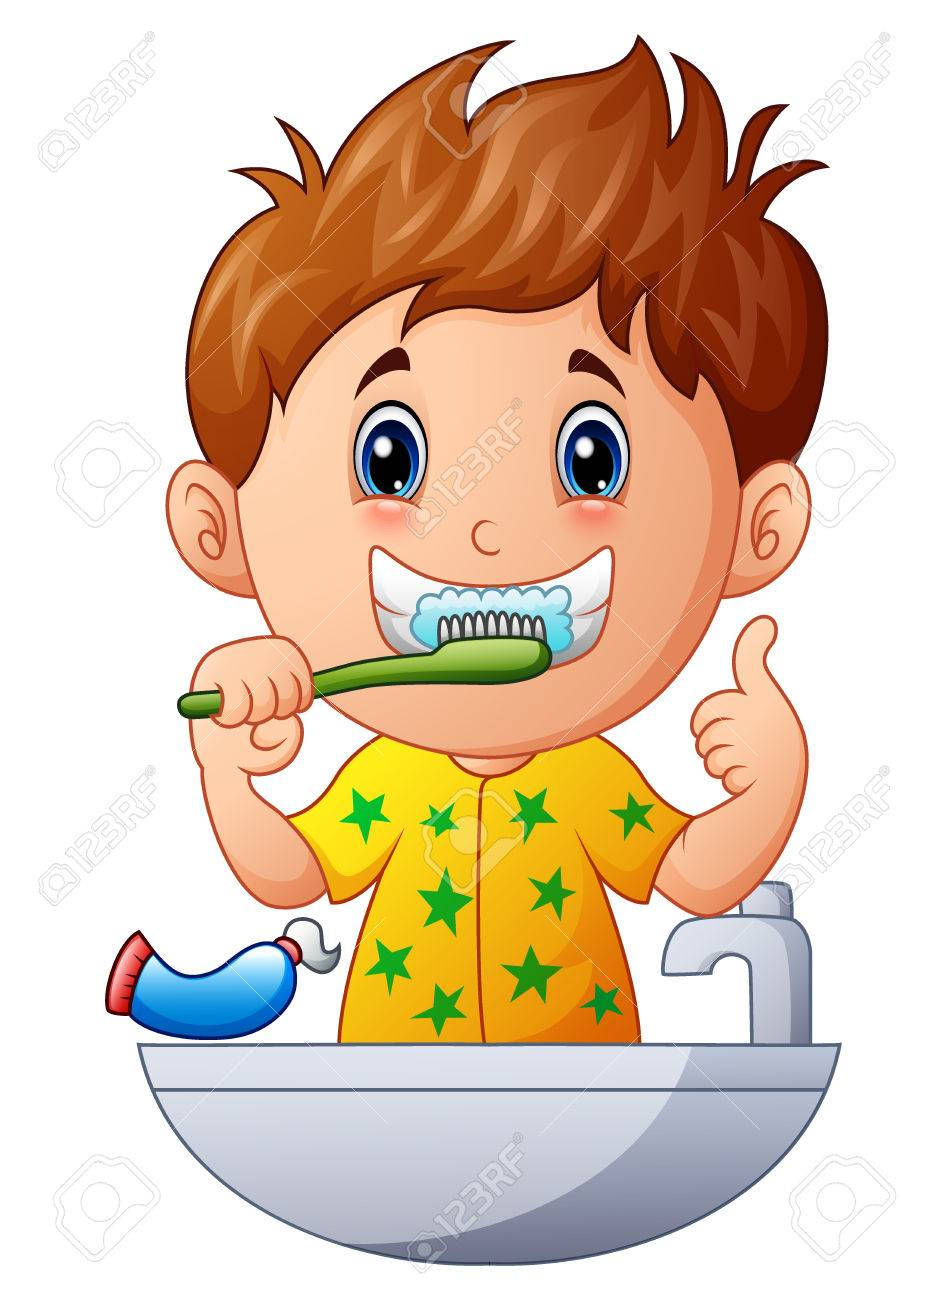 image black and white download Child station . Kids brushing teeth clipart